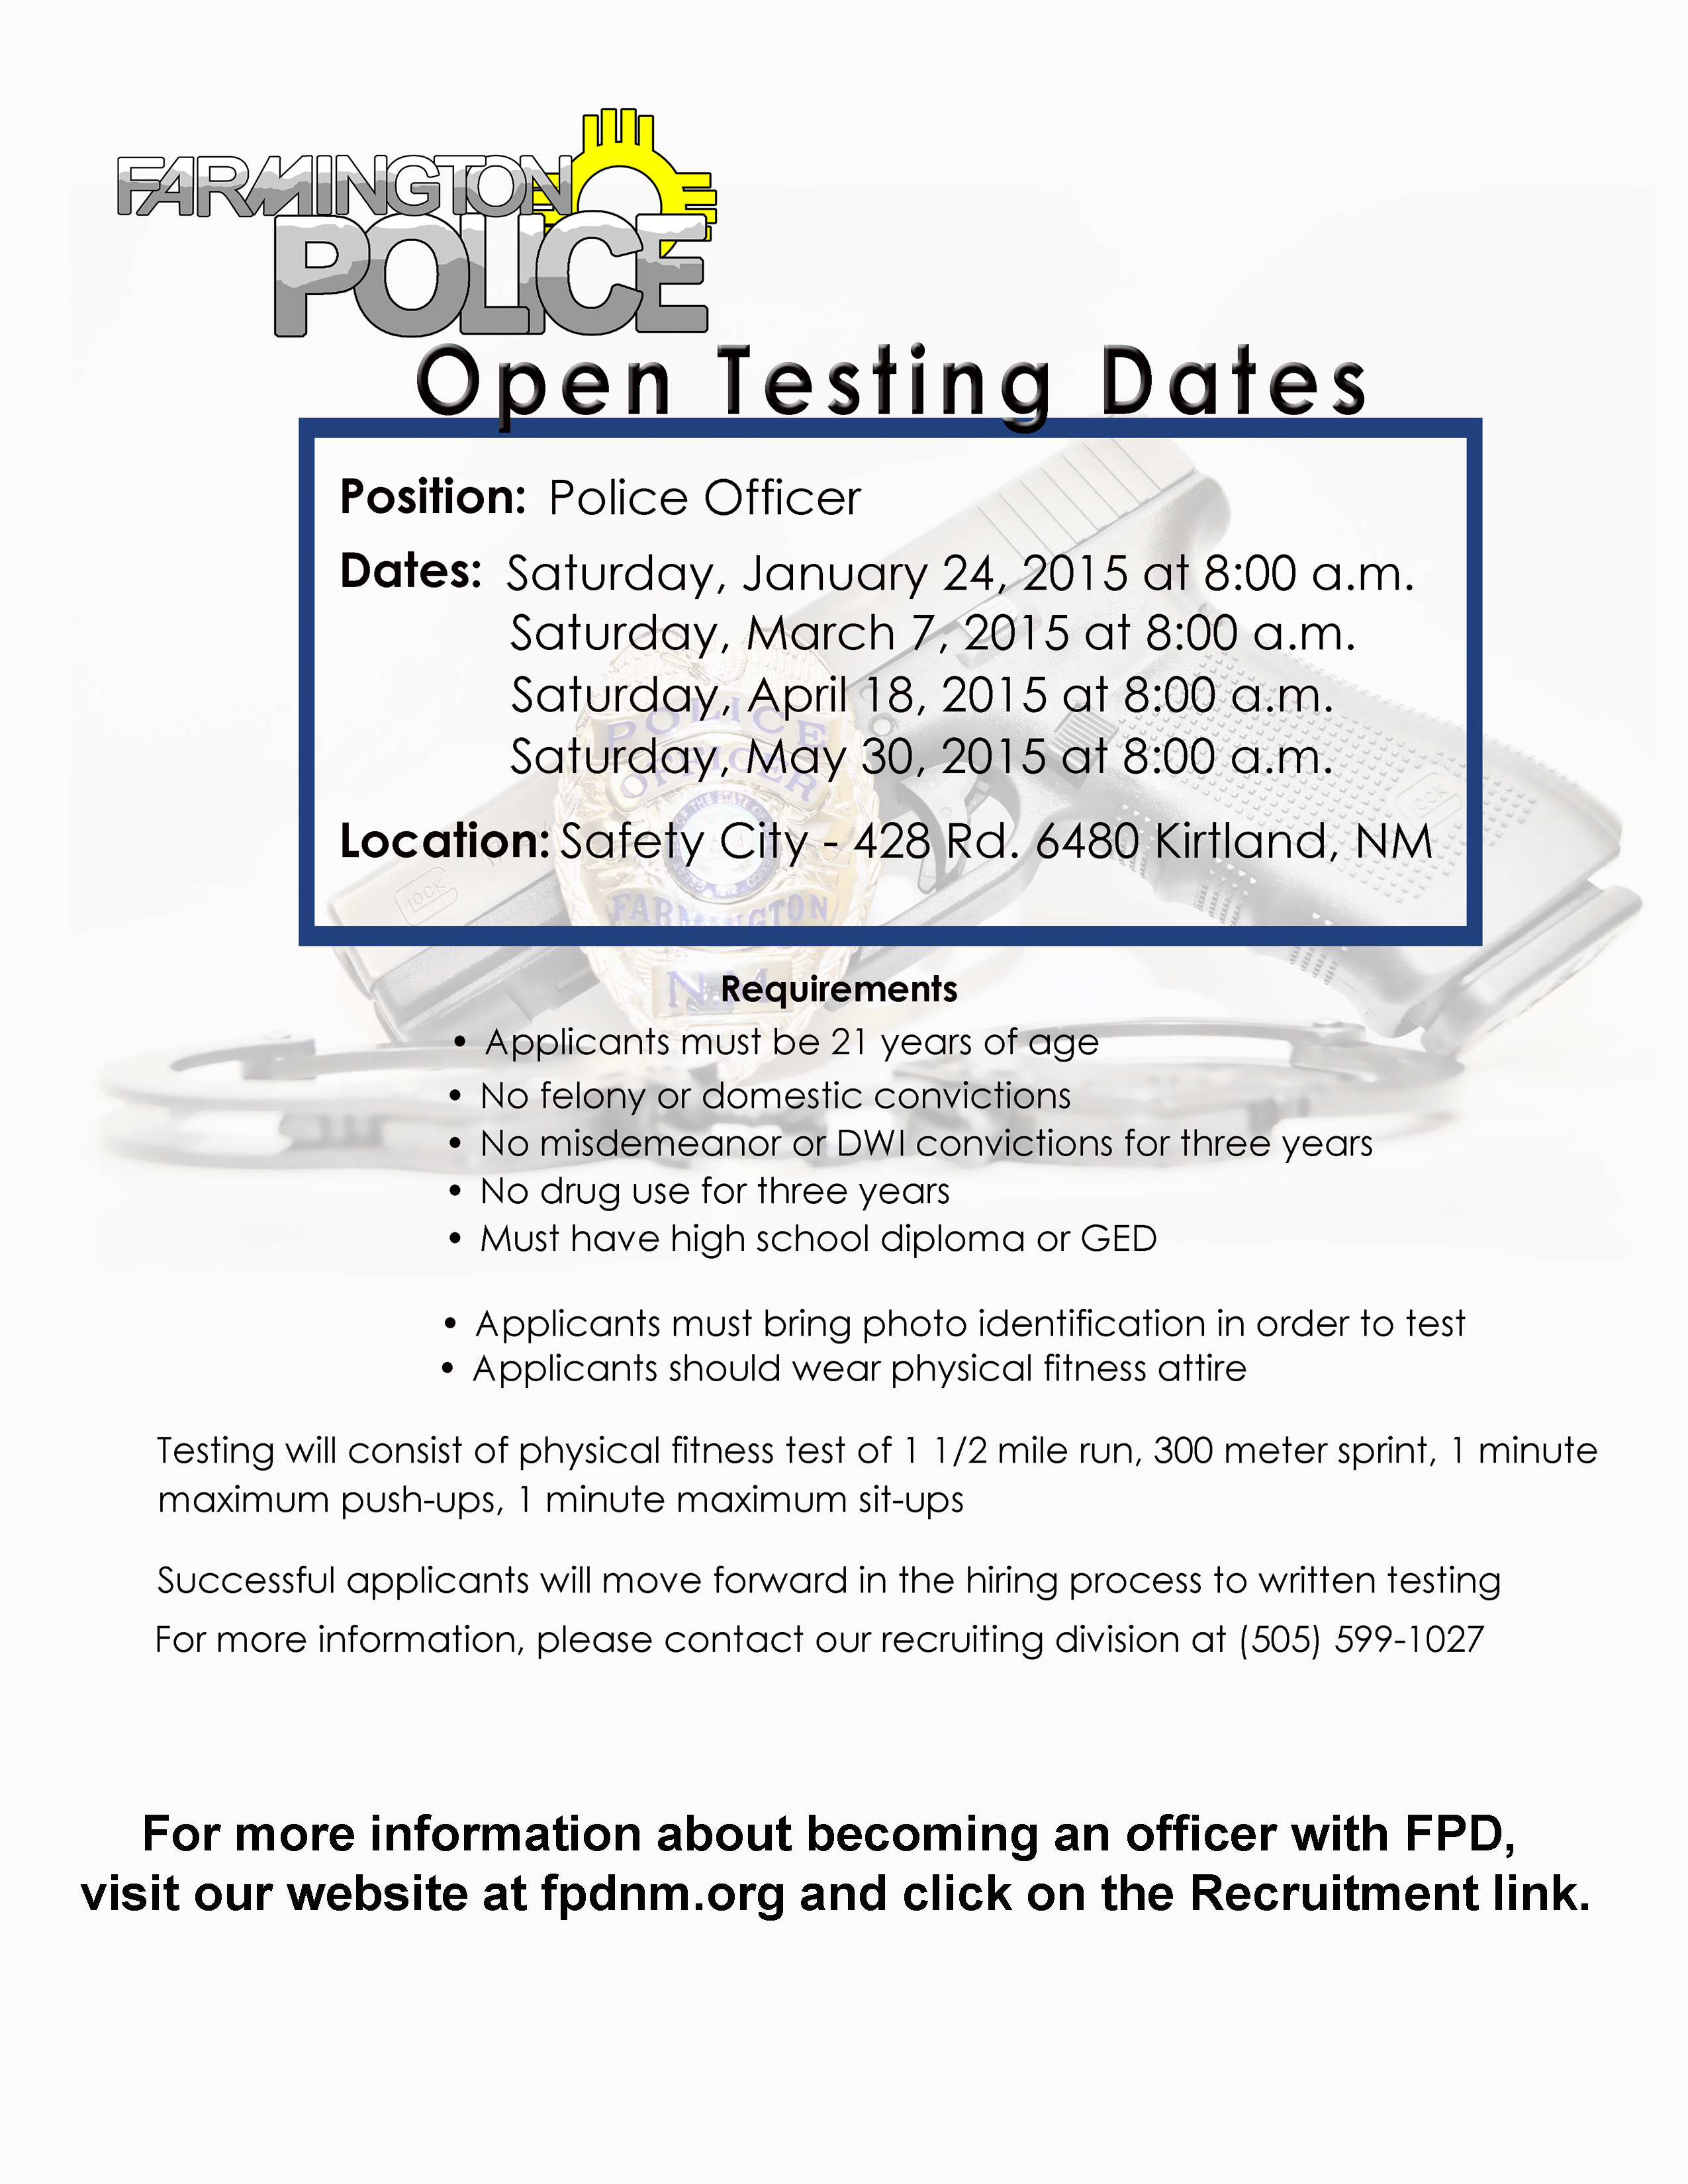 2015 Open Testing Dates Flyer.jpg